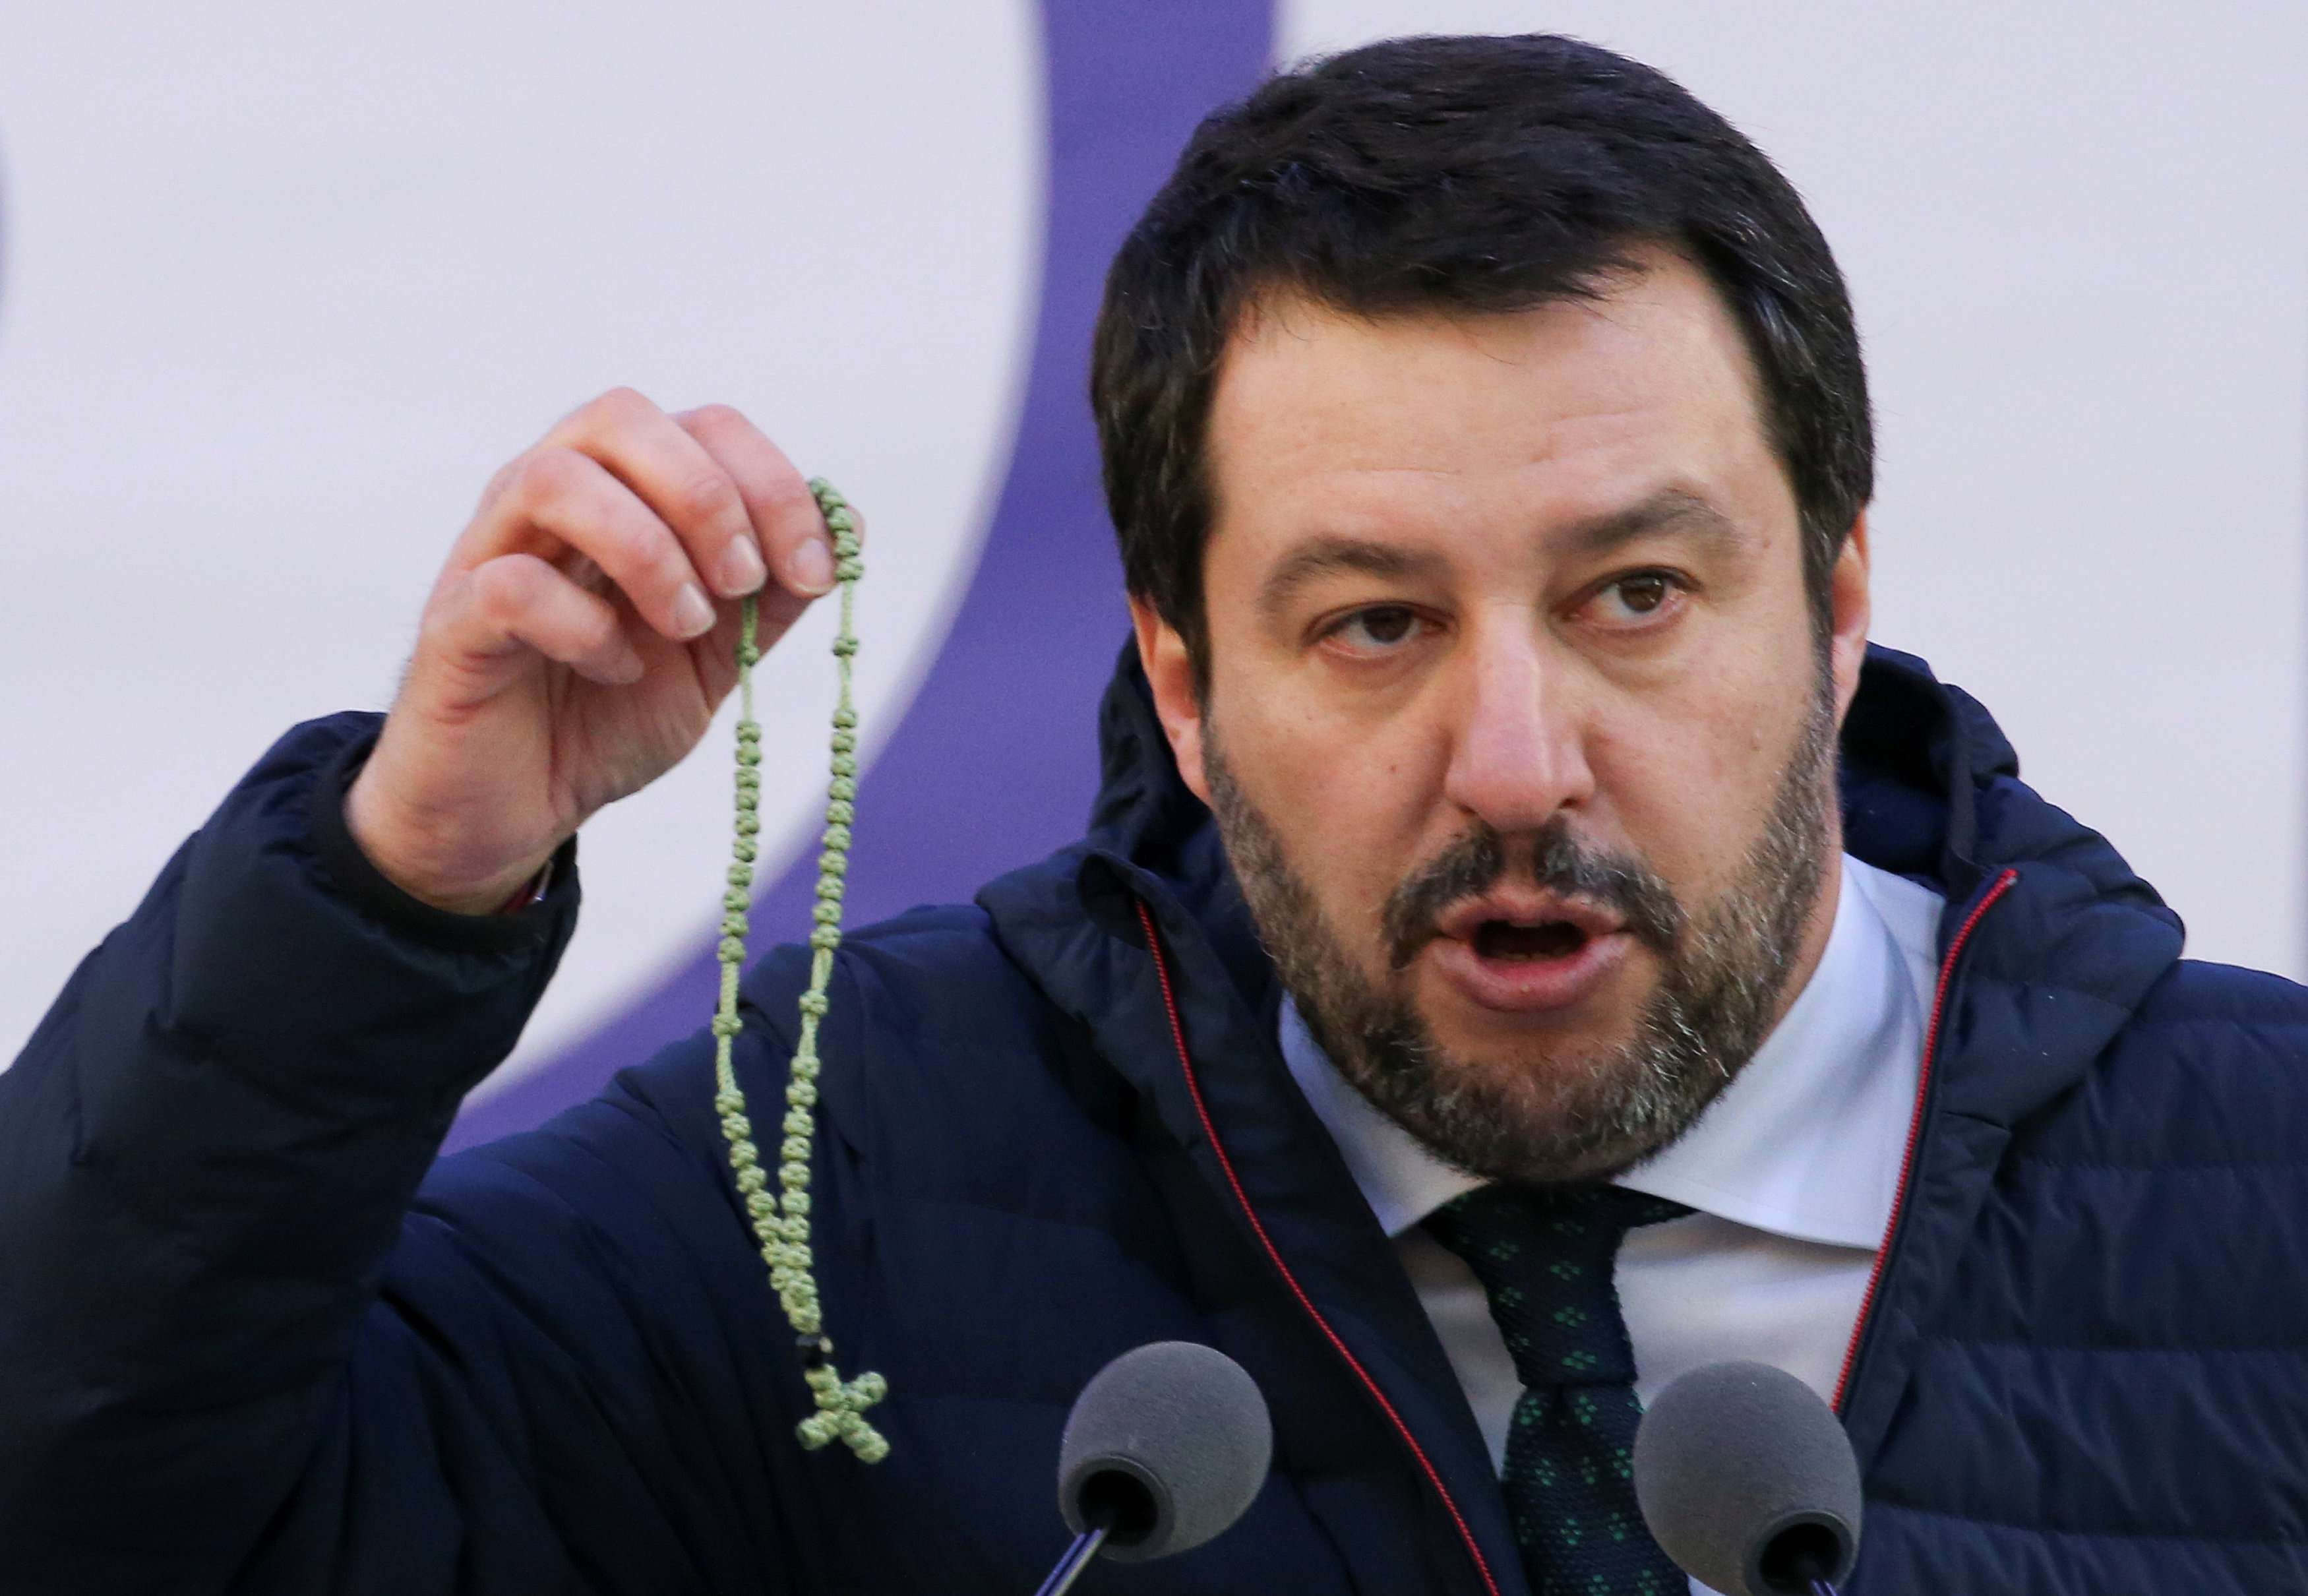 Italian Northern League leader Matteo Salvini shows a rosary as he speaks during a political rally in Milan, Italy February 24. (Reuters)